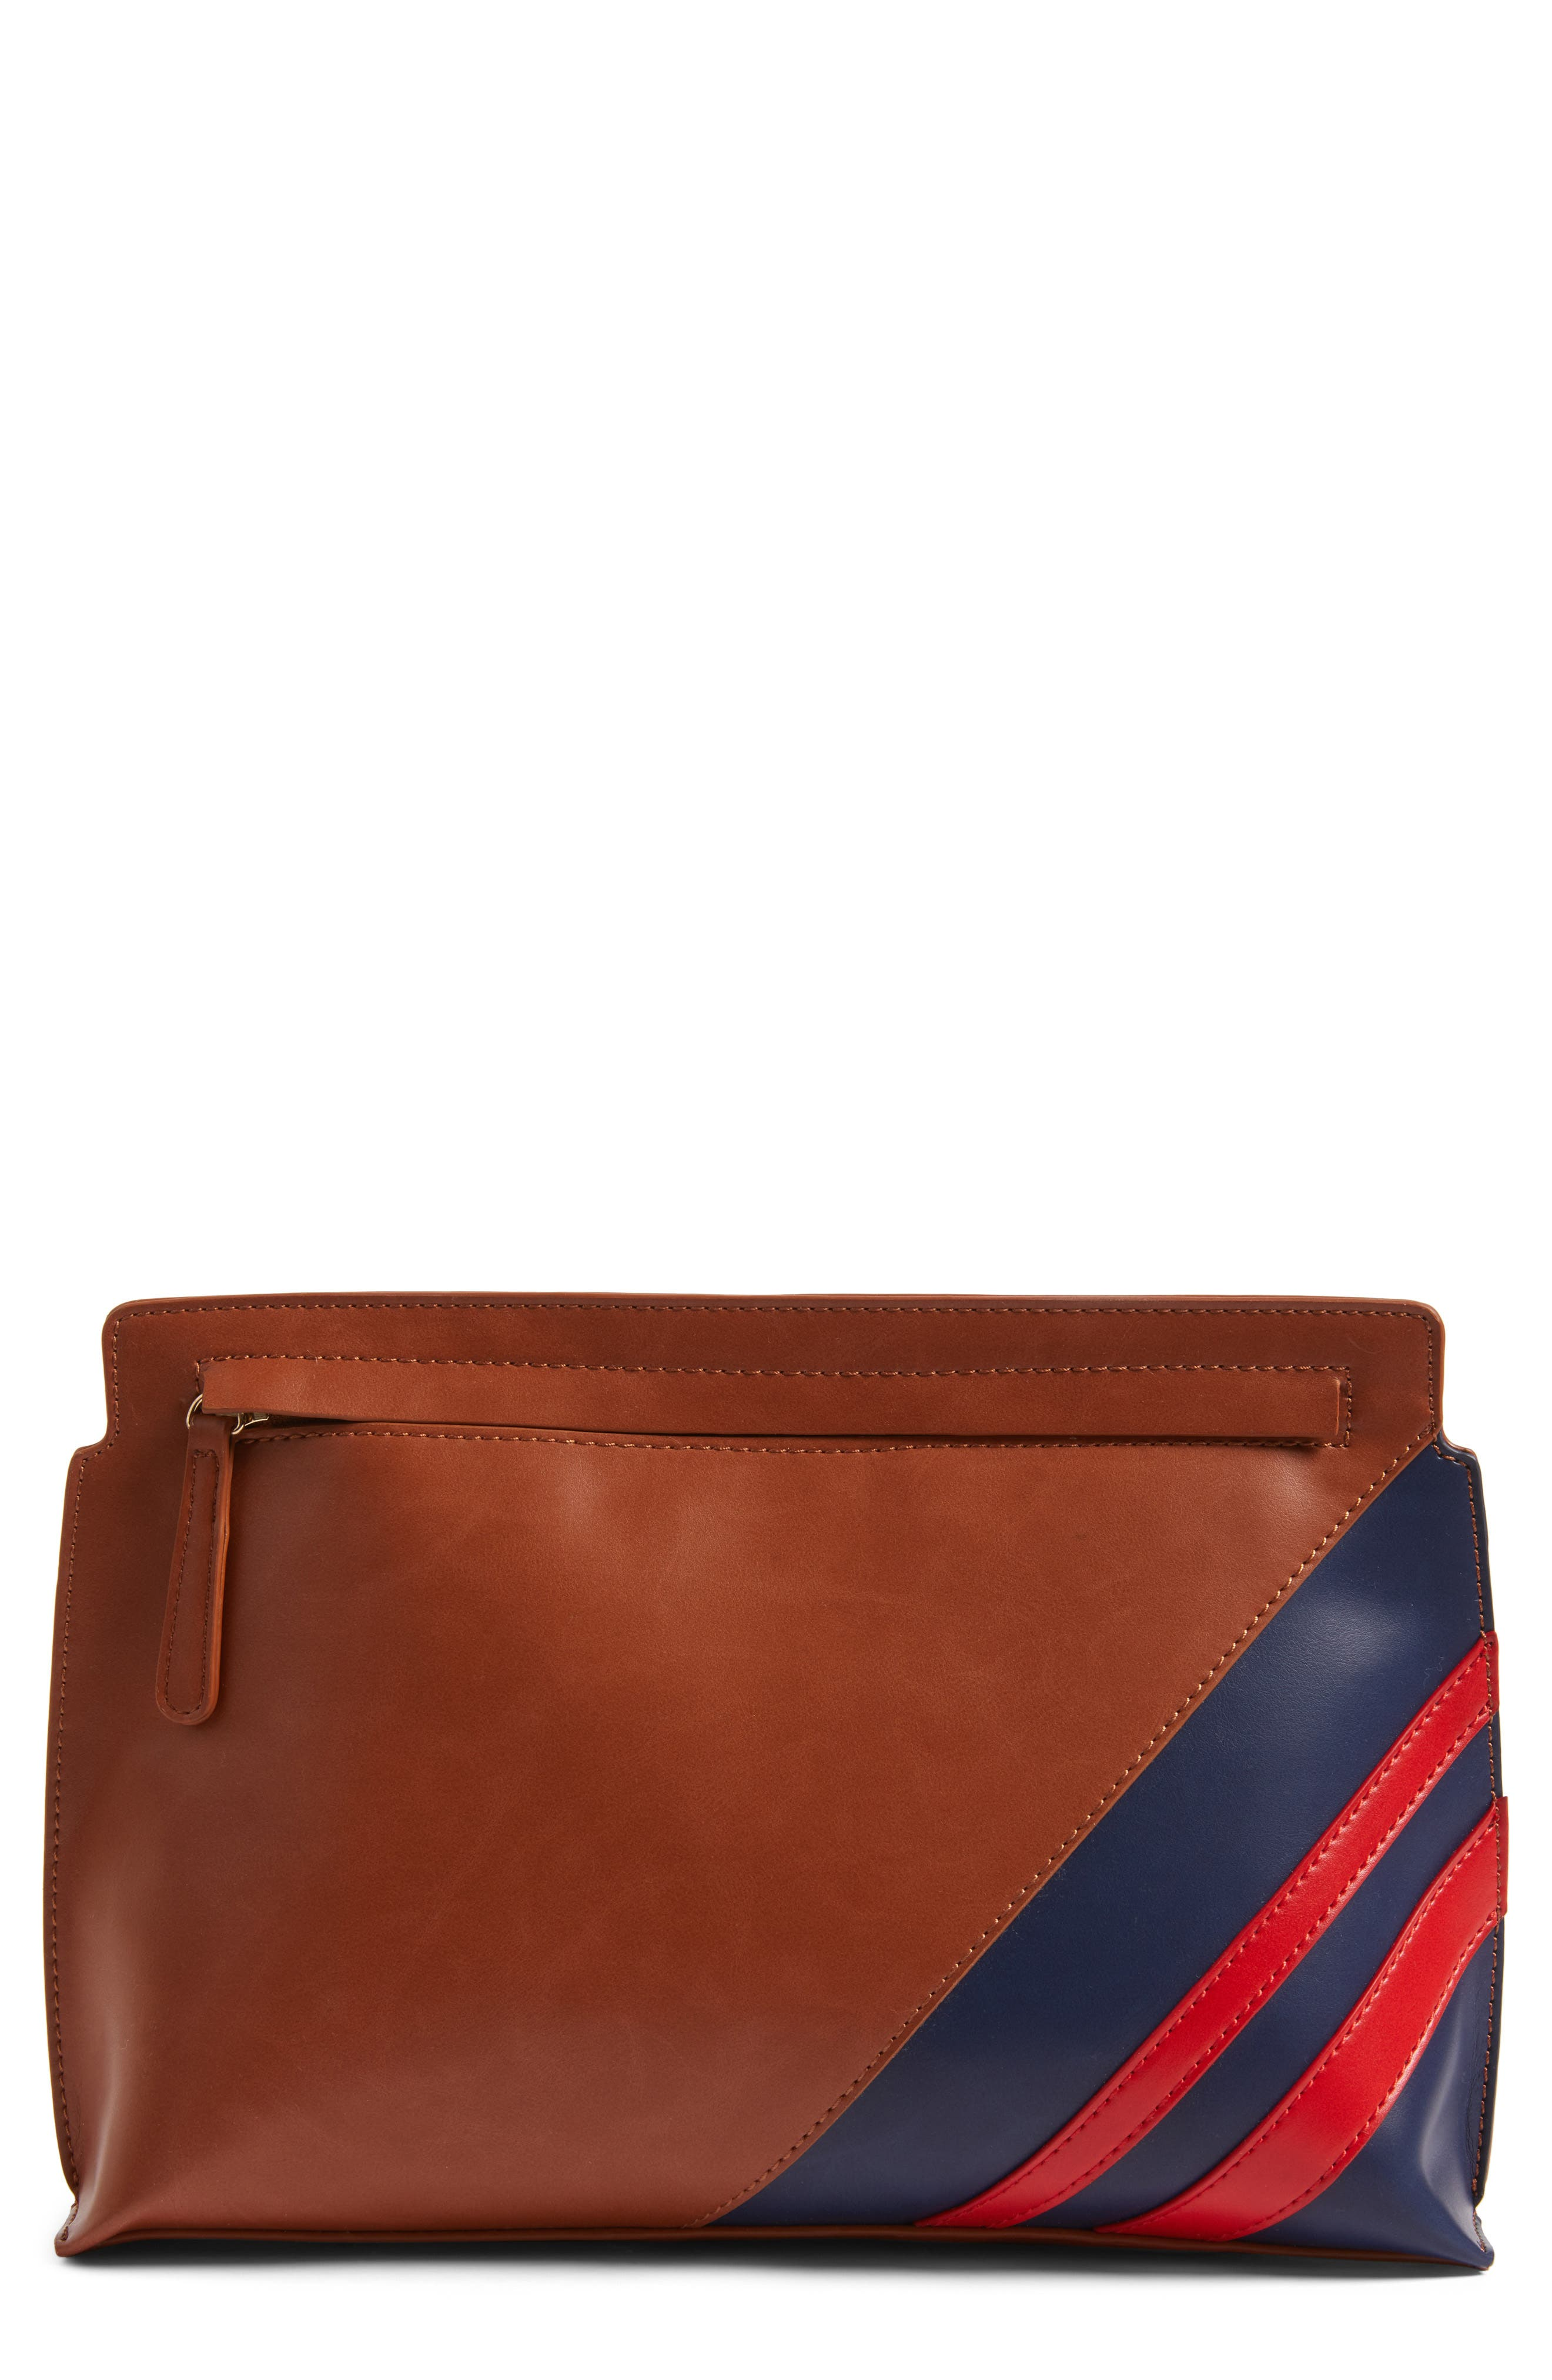 Main Image - BP. Stripe Faux Leather Clutch